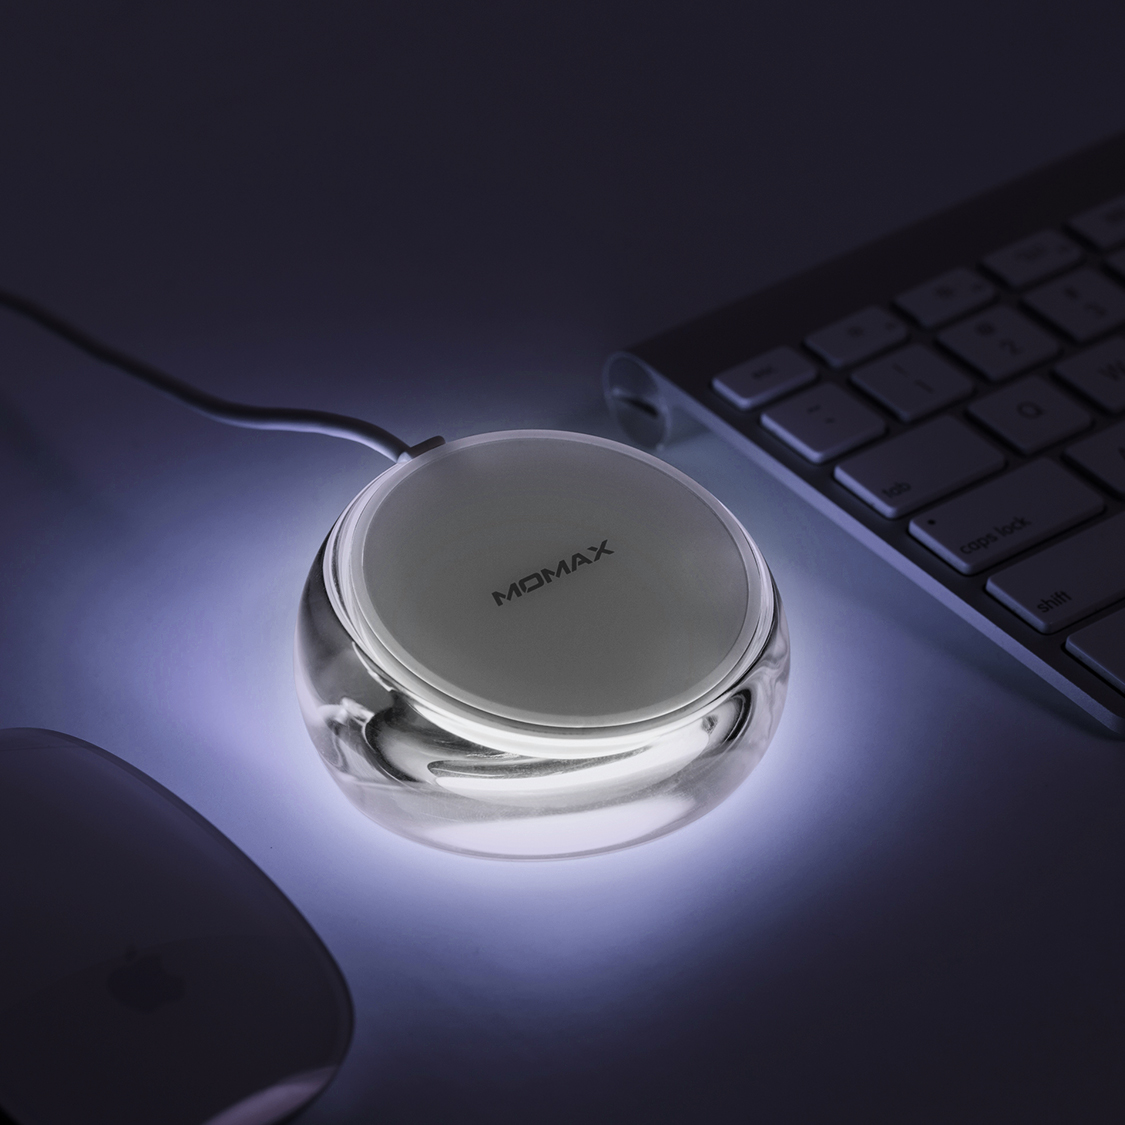 MOMAX Q.DOCK CRYSTAL Fast Wireless Charger LED Indicator